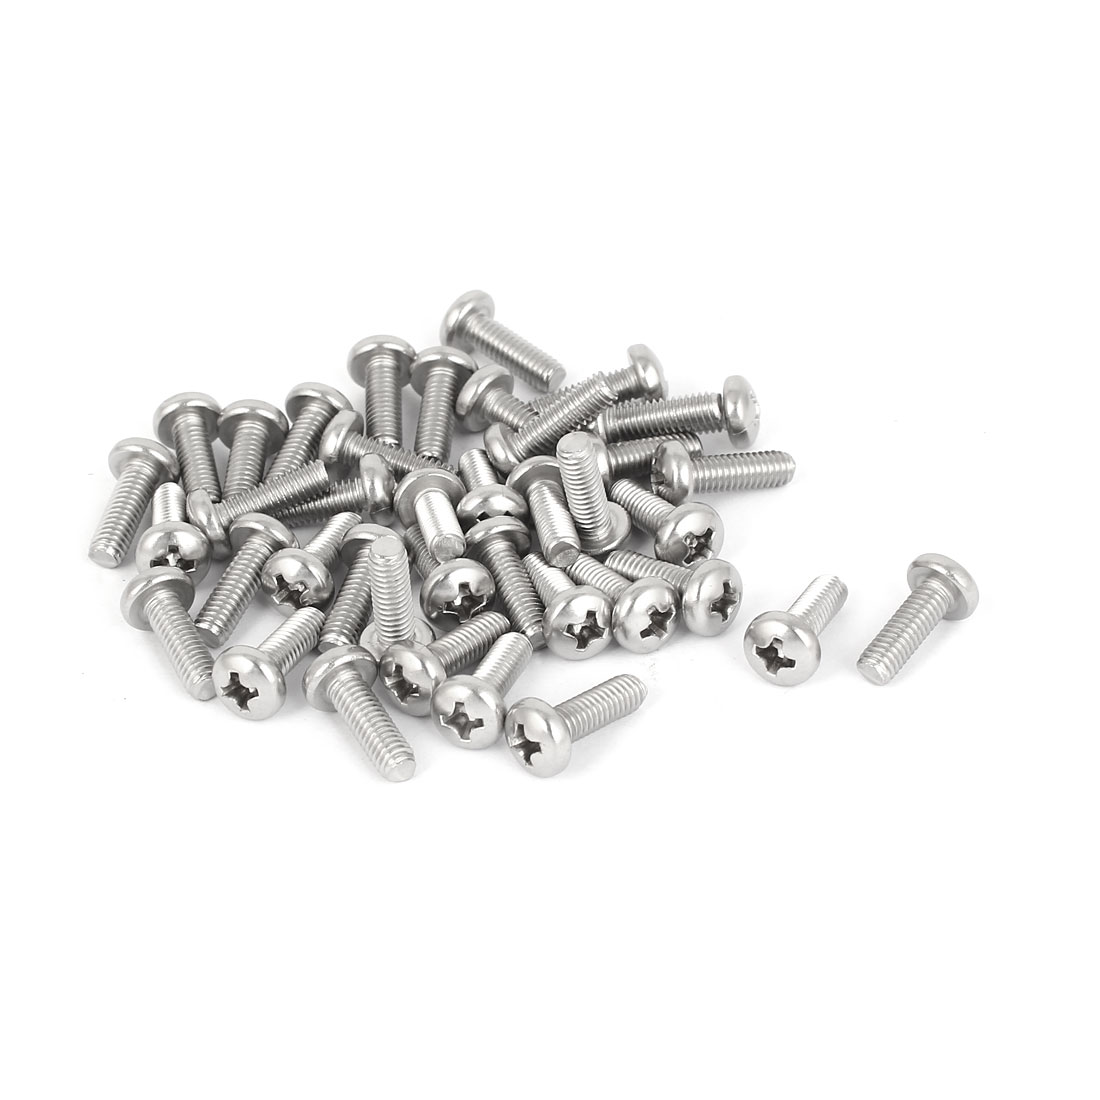 40 Pcs M4x12mm 316 Stainless Steel Phillips Pan Head Machine Screws Fasteners